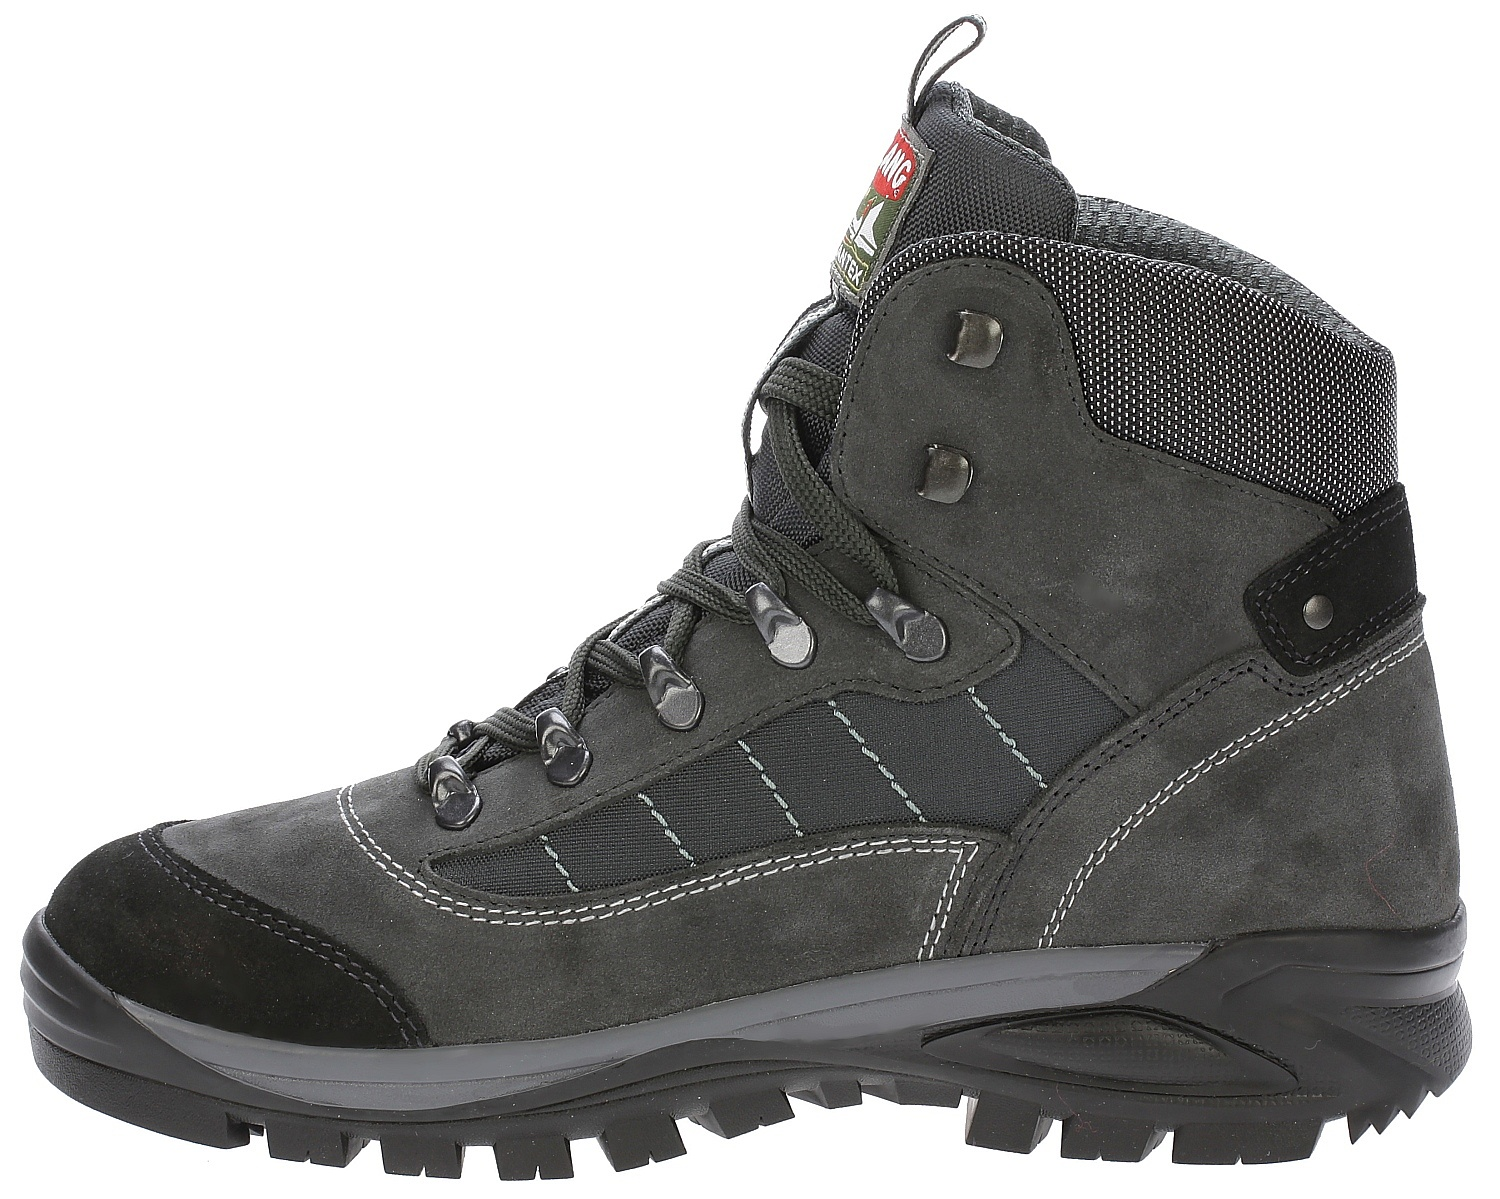 shoes Olang Tarvisio Tex - 816 Anthracite - Snowboard shop ... a99673c795d